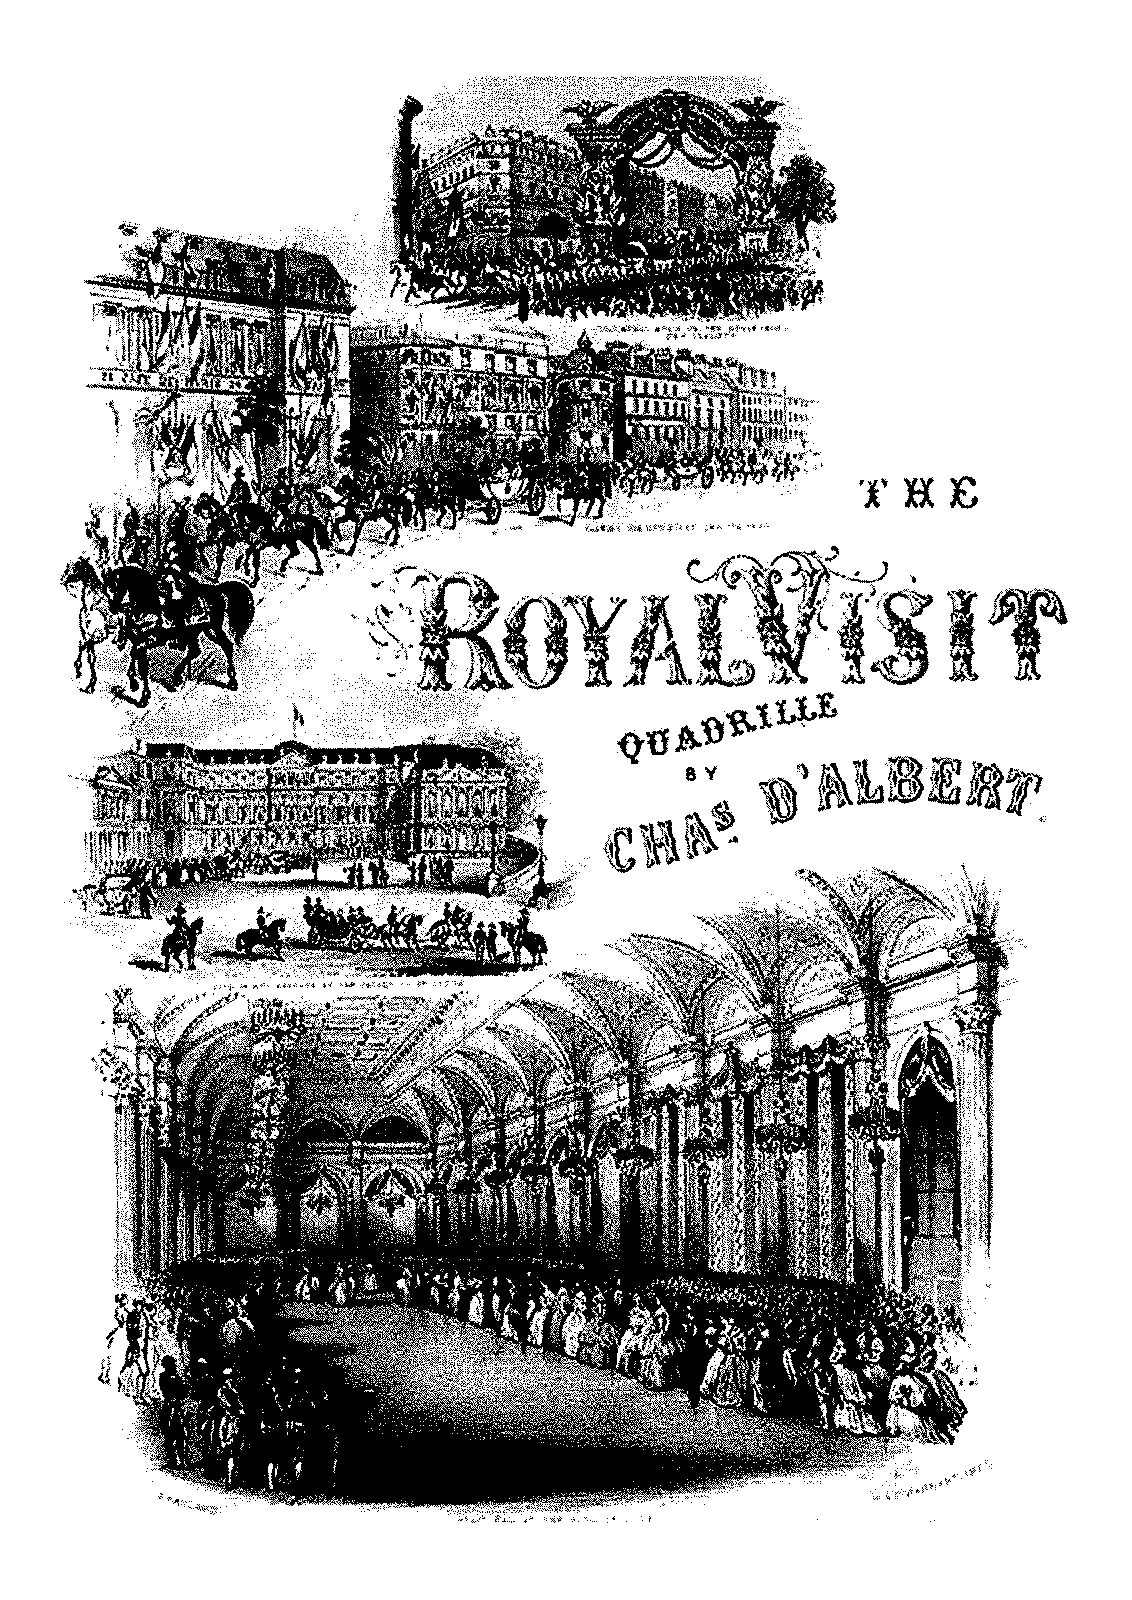 PMLP343123-Albert, Charles Louis Napoleon d' - 1809-1886 - The Royal Visit - Fifth Quadrille on French Airs.pdf